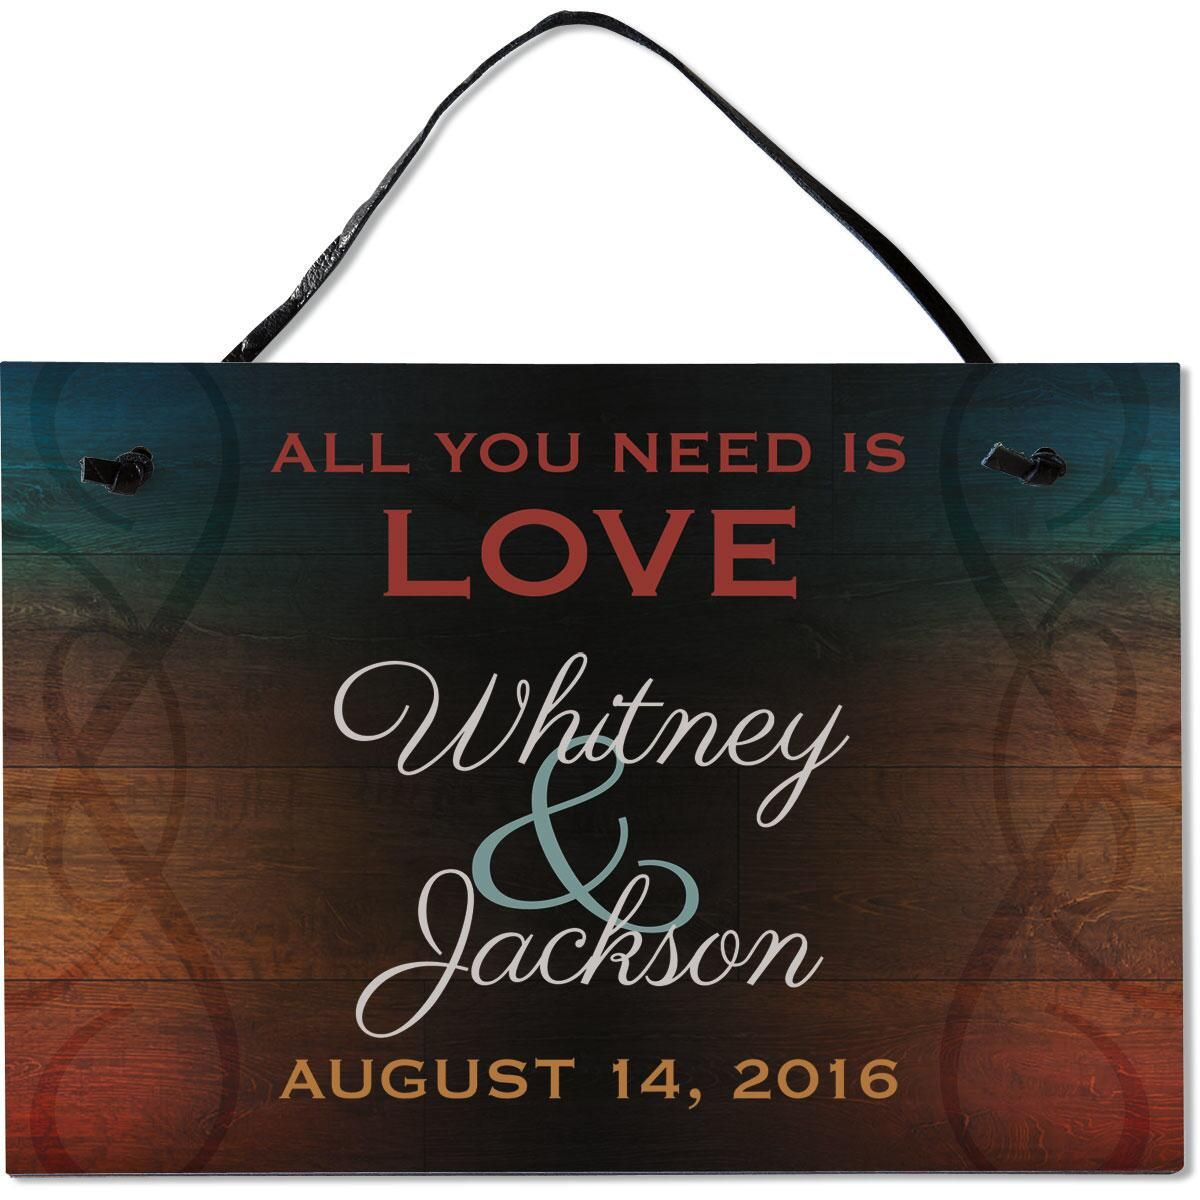 All You Need Is Love Personalized Wooden Plaque